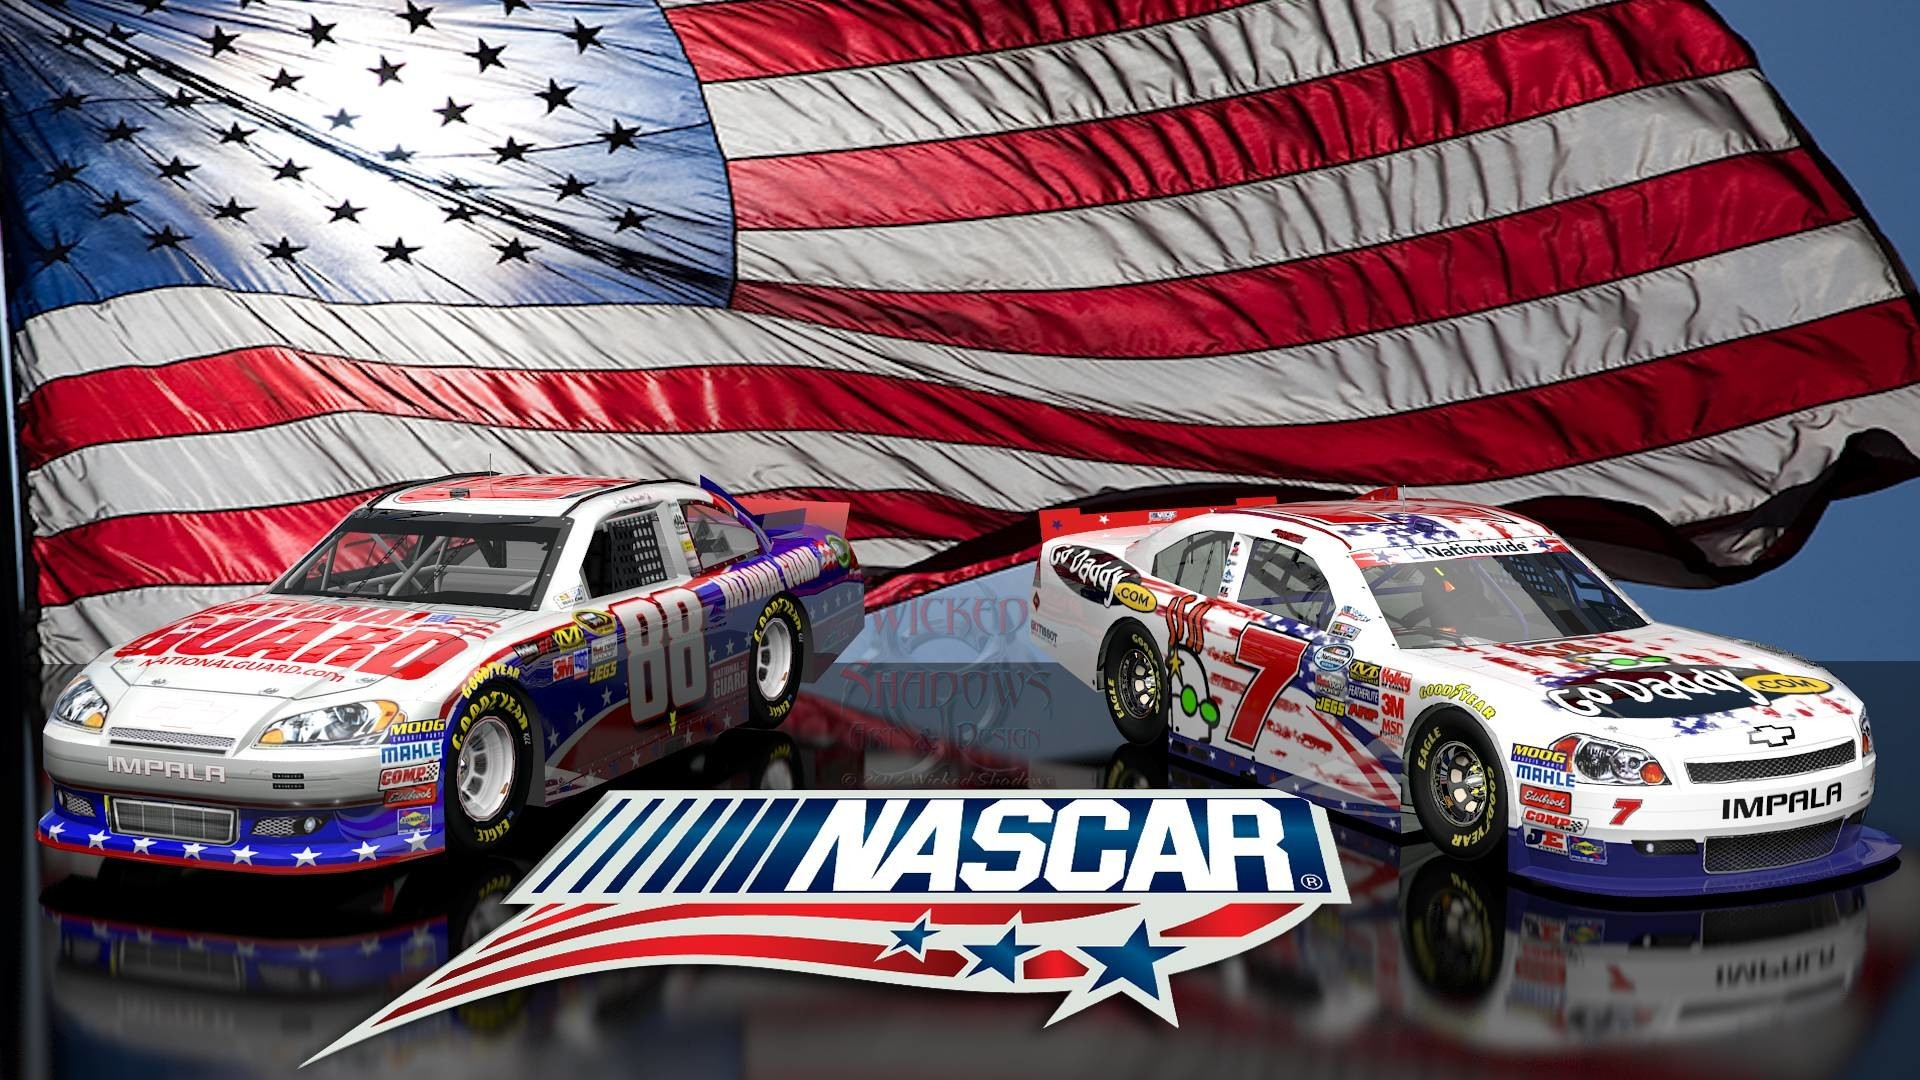 Res: 1920x1080, Nascar Wallpaper  Nascar Wallpapers Images on Cars Ford Fusion  Nascar Desktop Backgrounds X